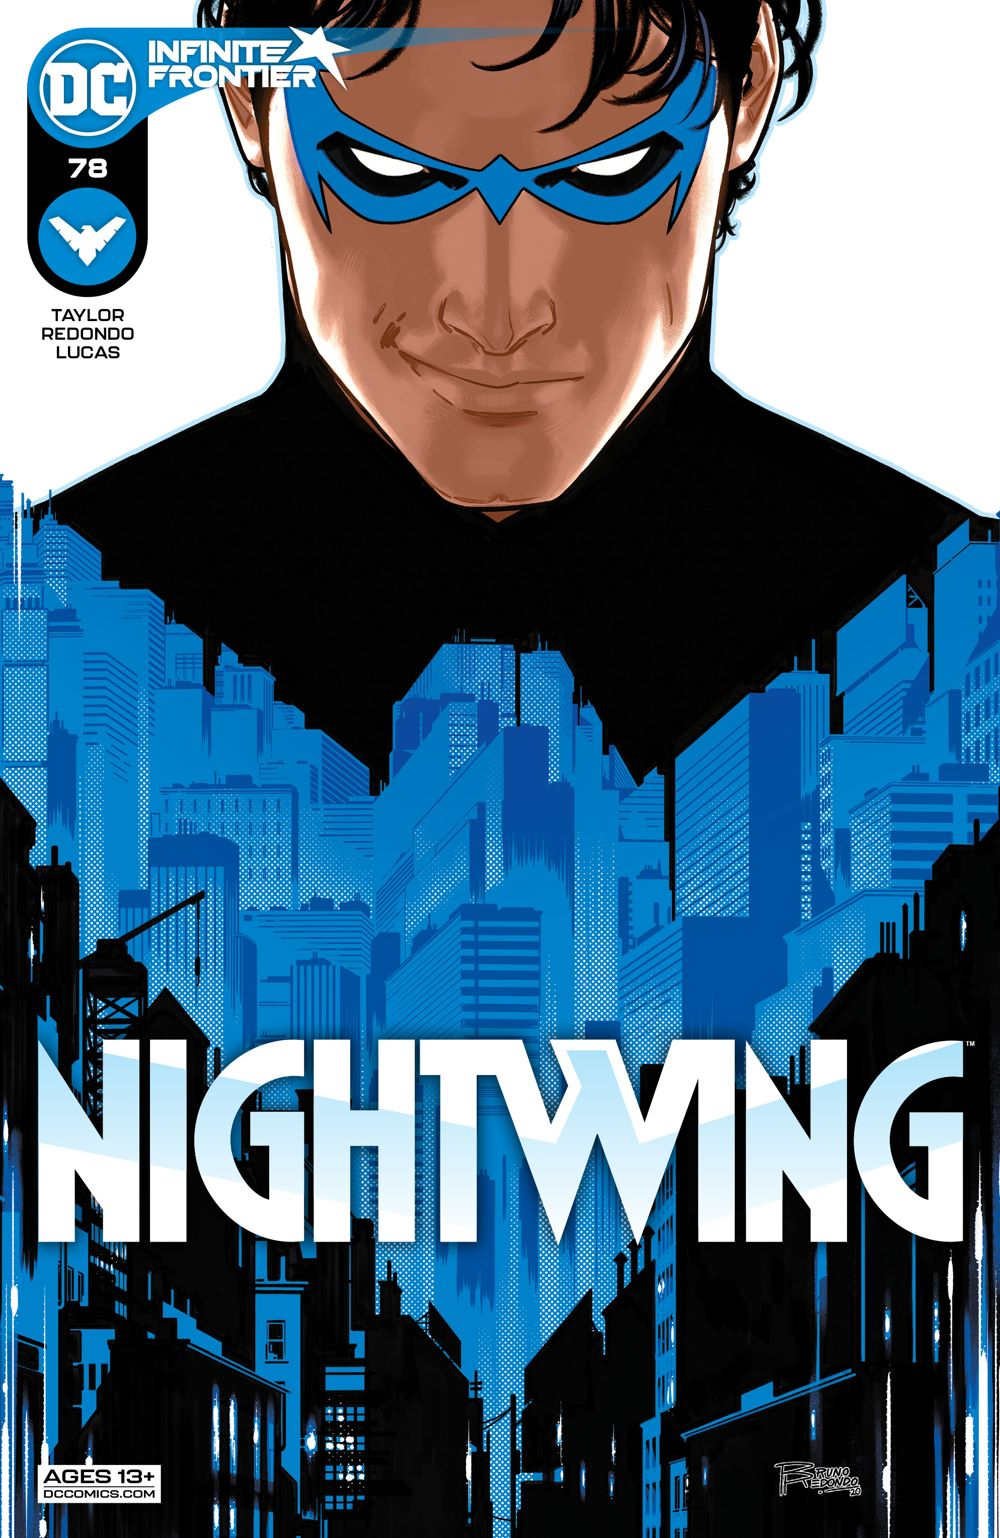 NTW_78-1_604ada434ebf23.55797947 First Look at DC Comics' NIGHTWING #78